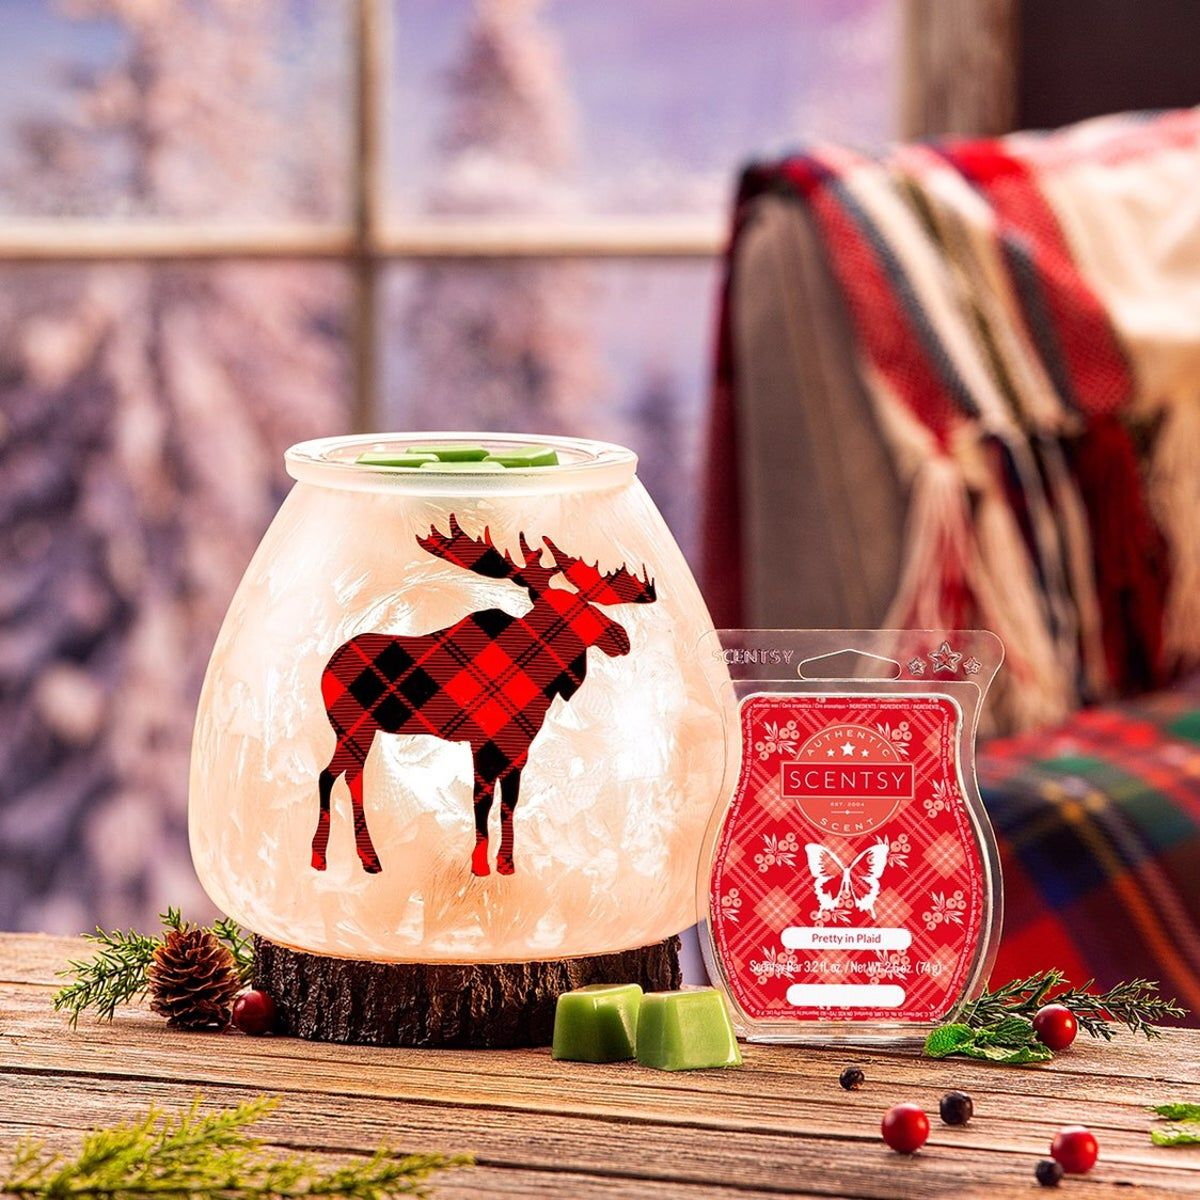 Northern Plaid Warmer Scentsy Scent Warmers Scentsy Warmer